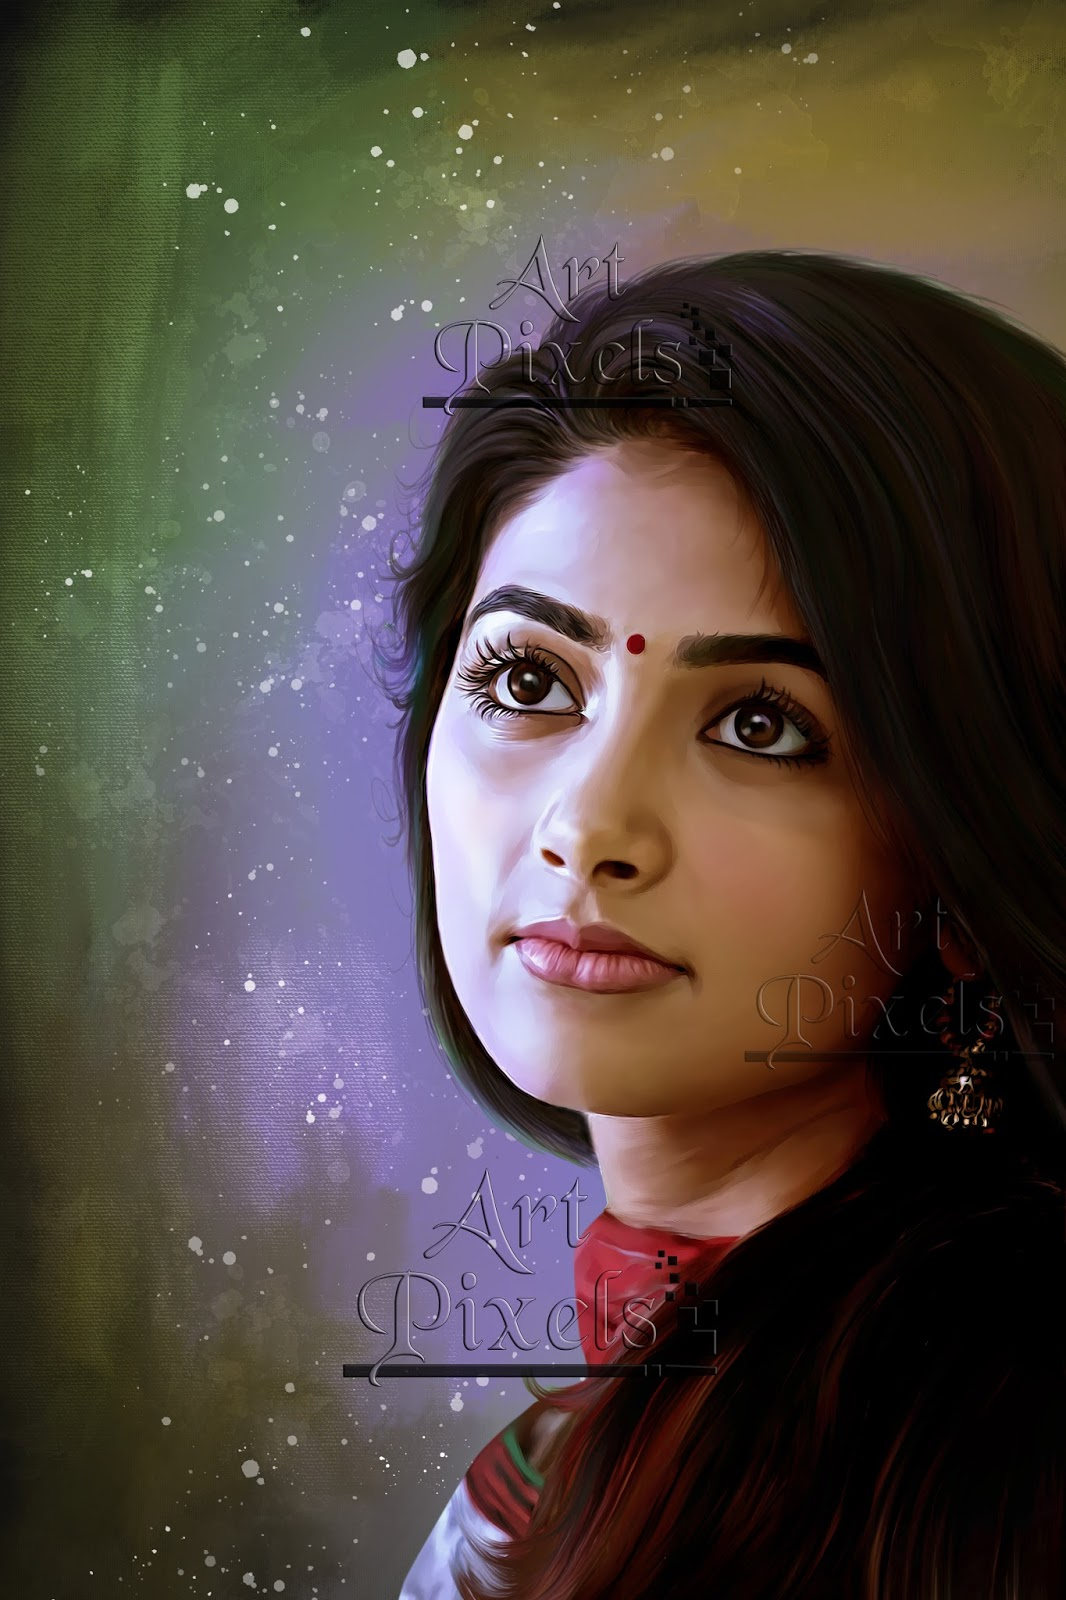 pooja hegde actress digital painting